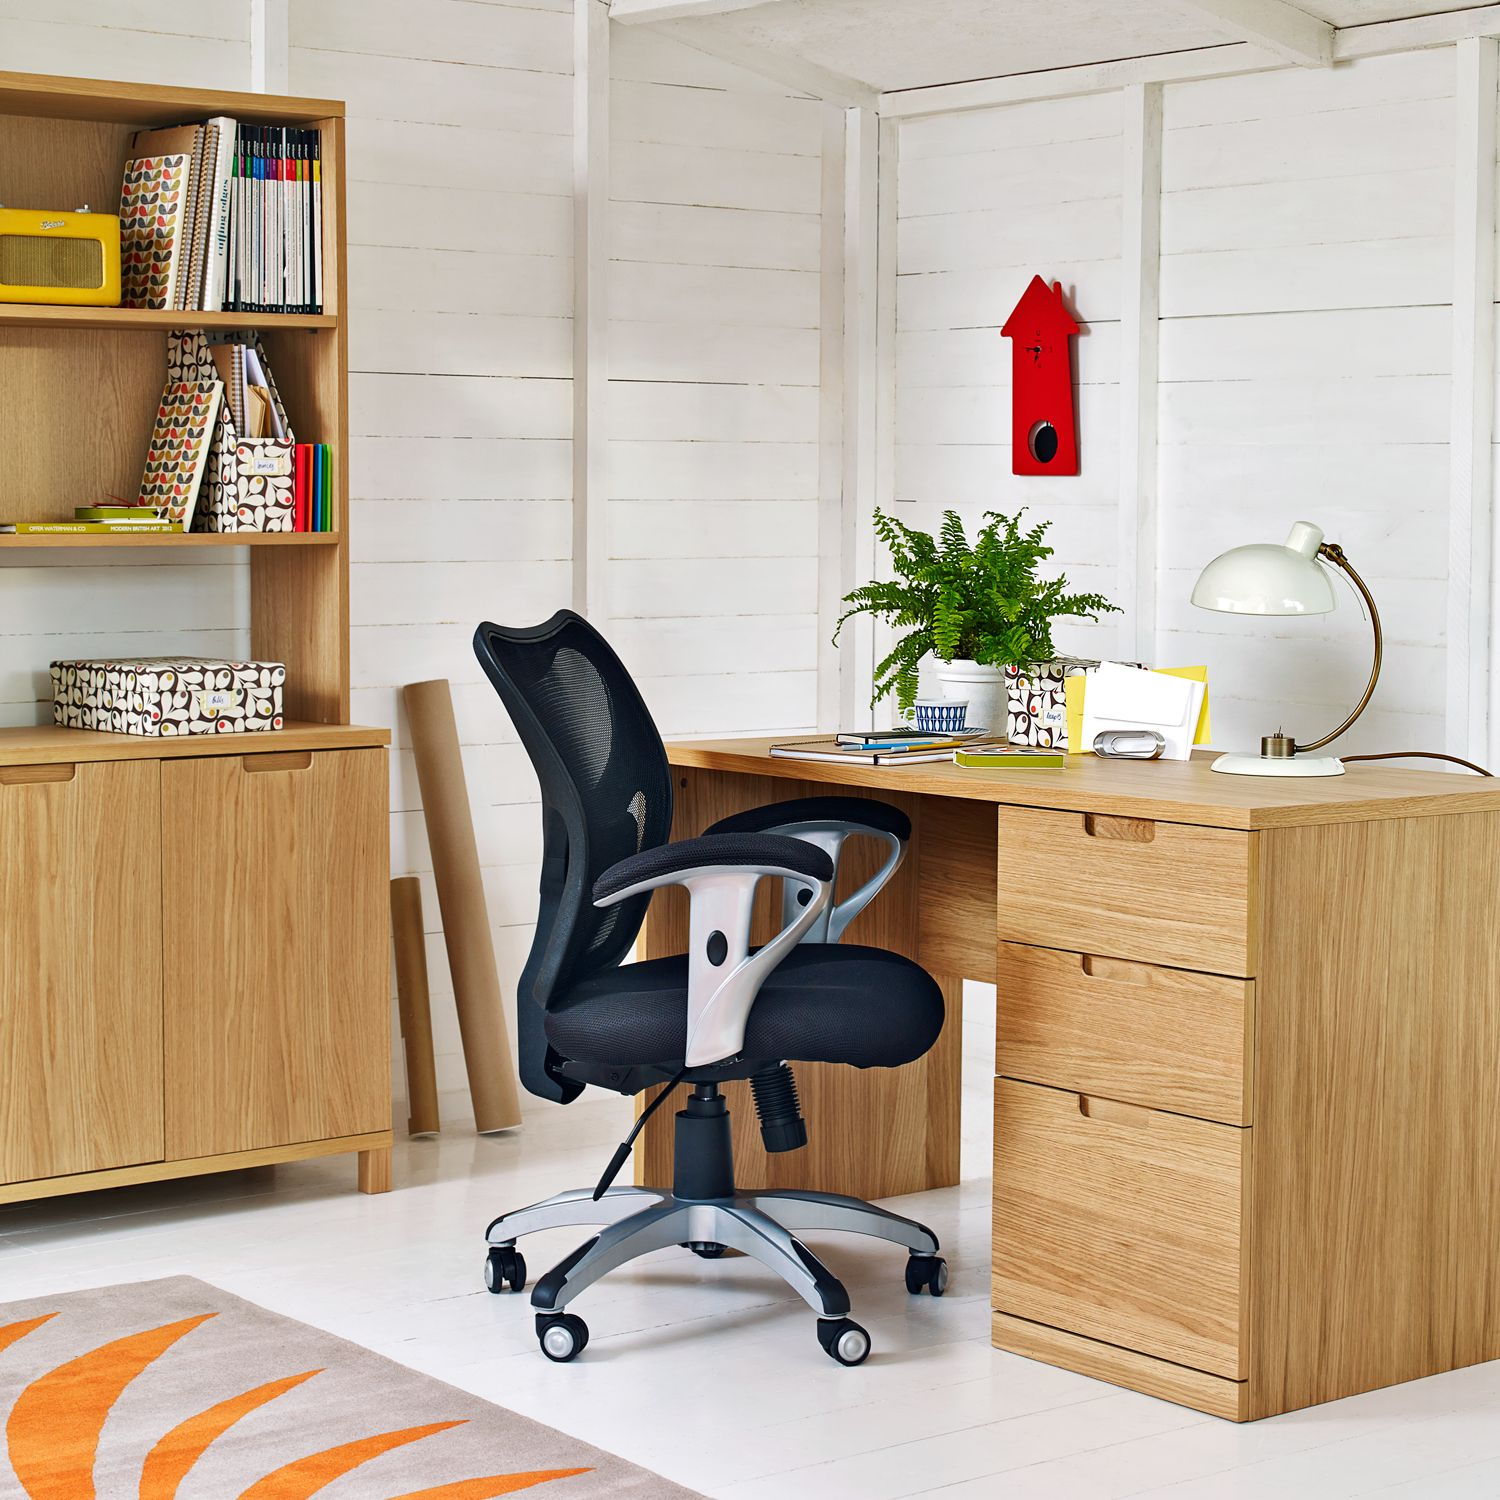 Wooden Desks For Home Study Classic And Modern L Shaped Oak Desk